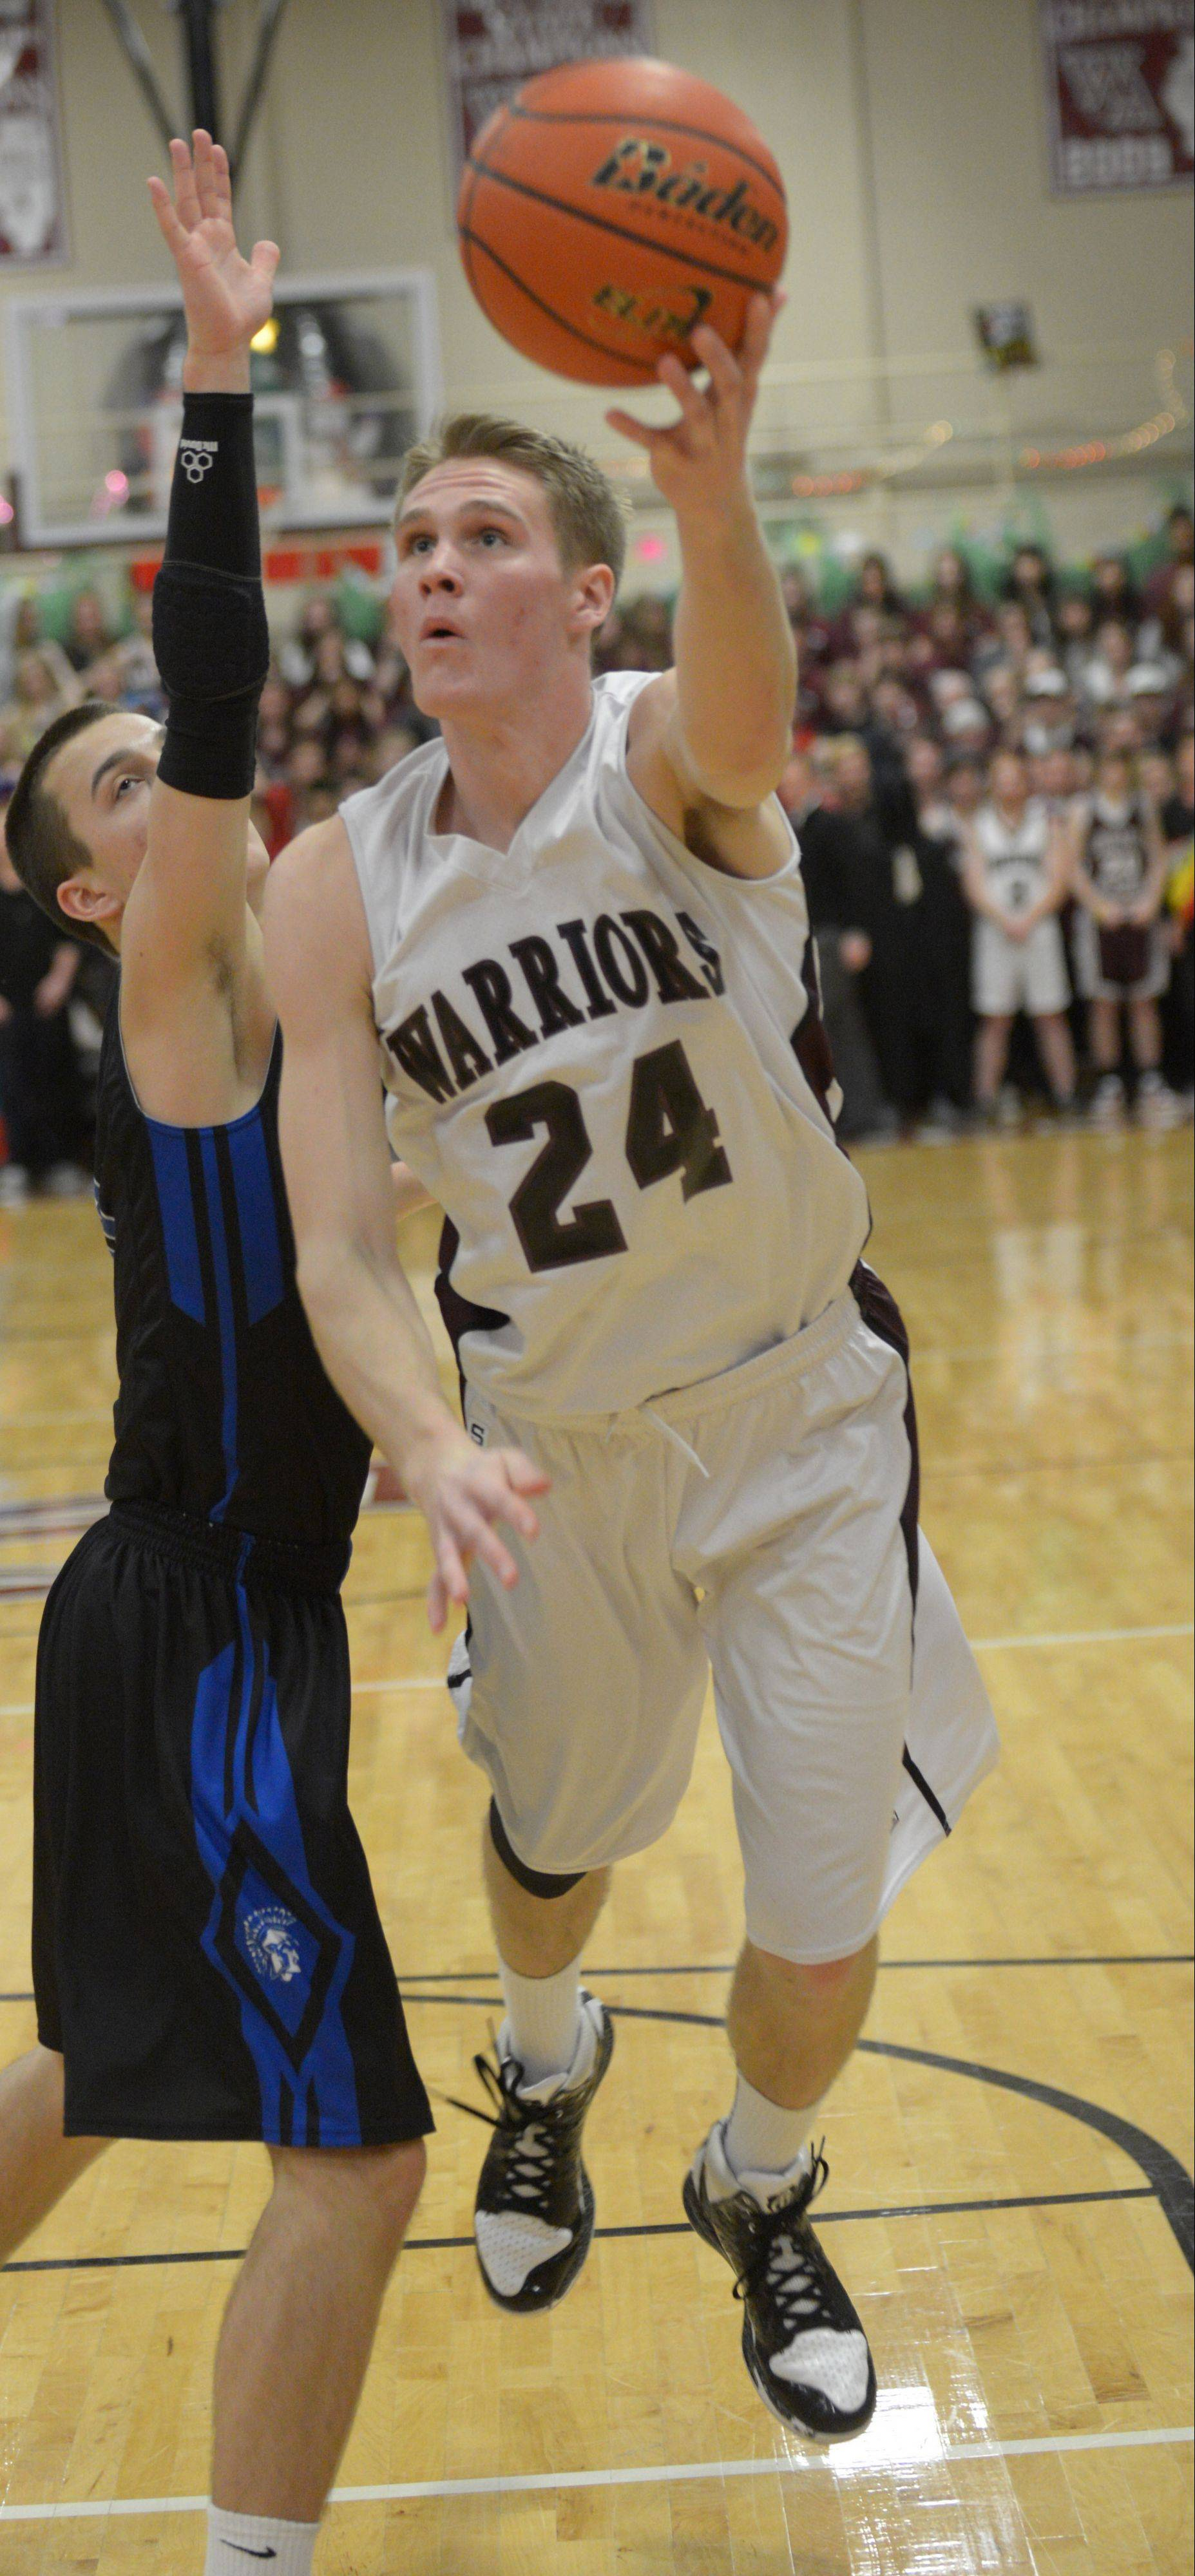 Wheaton Academy's Gordon Behr puts up a shot against St. Francis Wednesday in West Chicago.